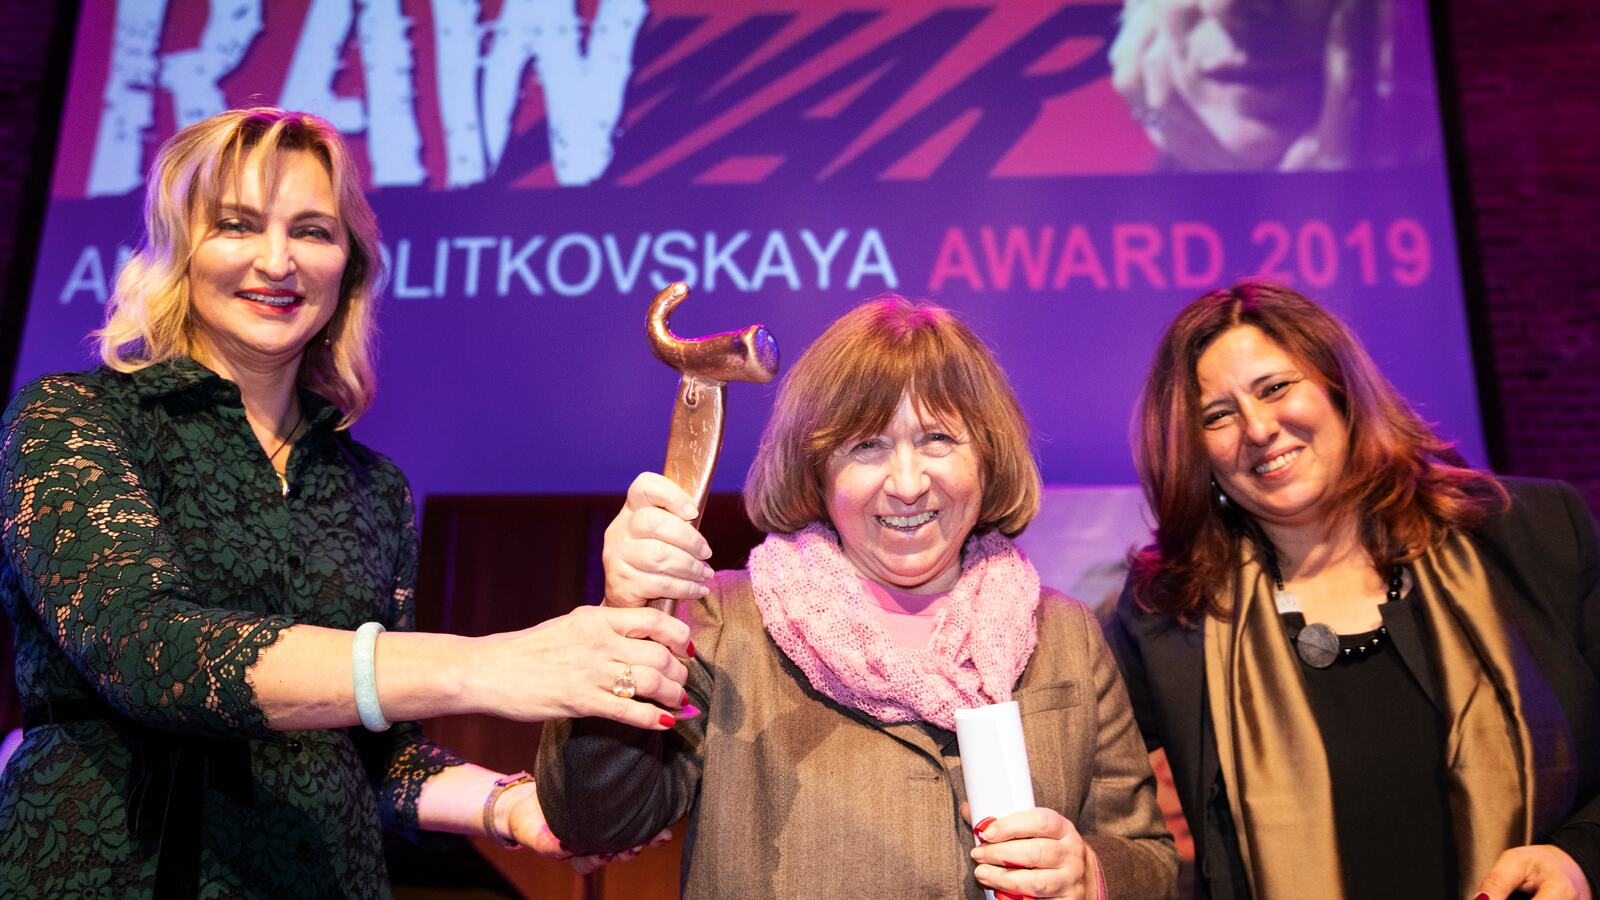 Refusing to Be Silenced, Women at Awards Ceremony